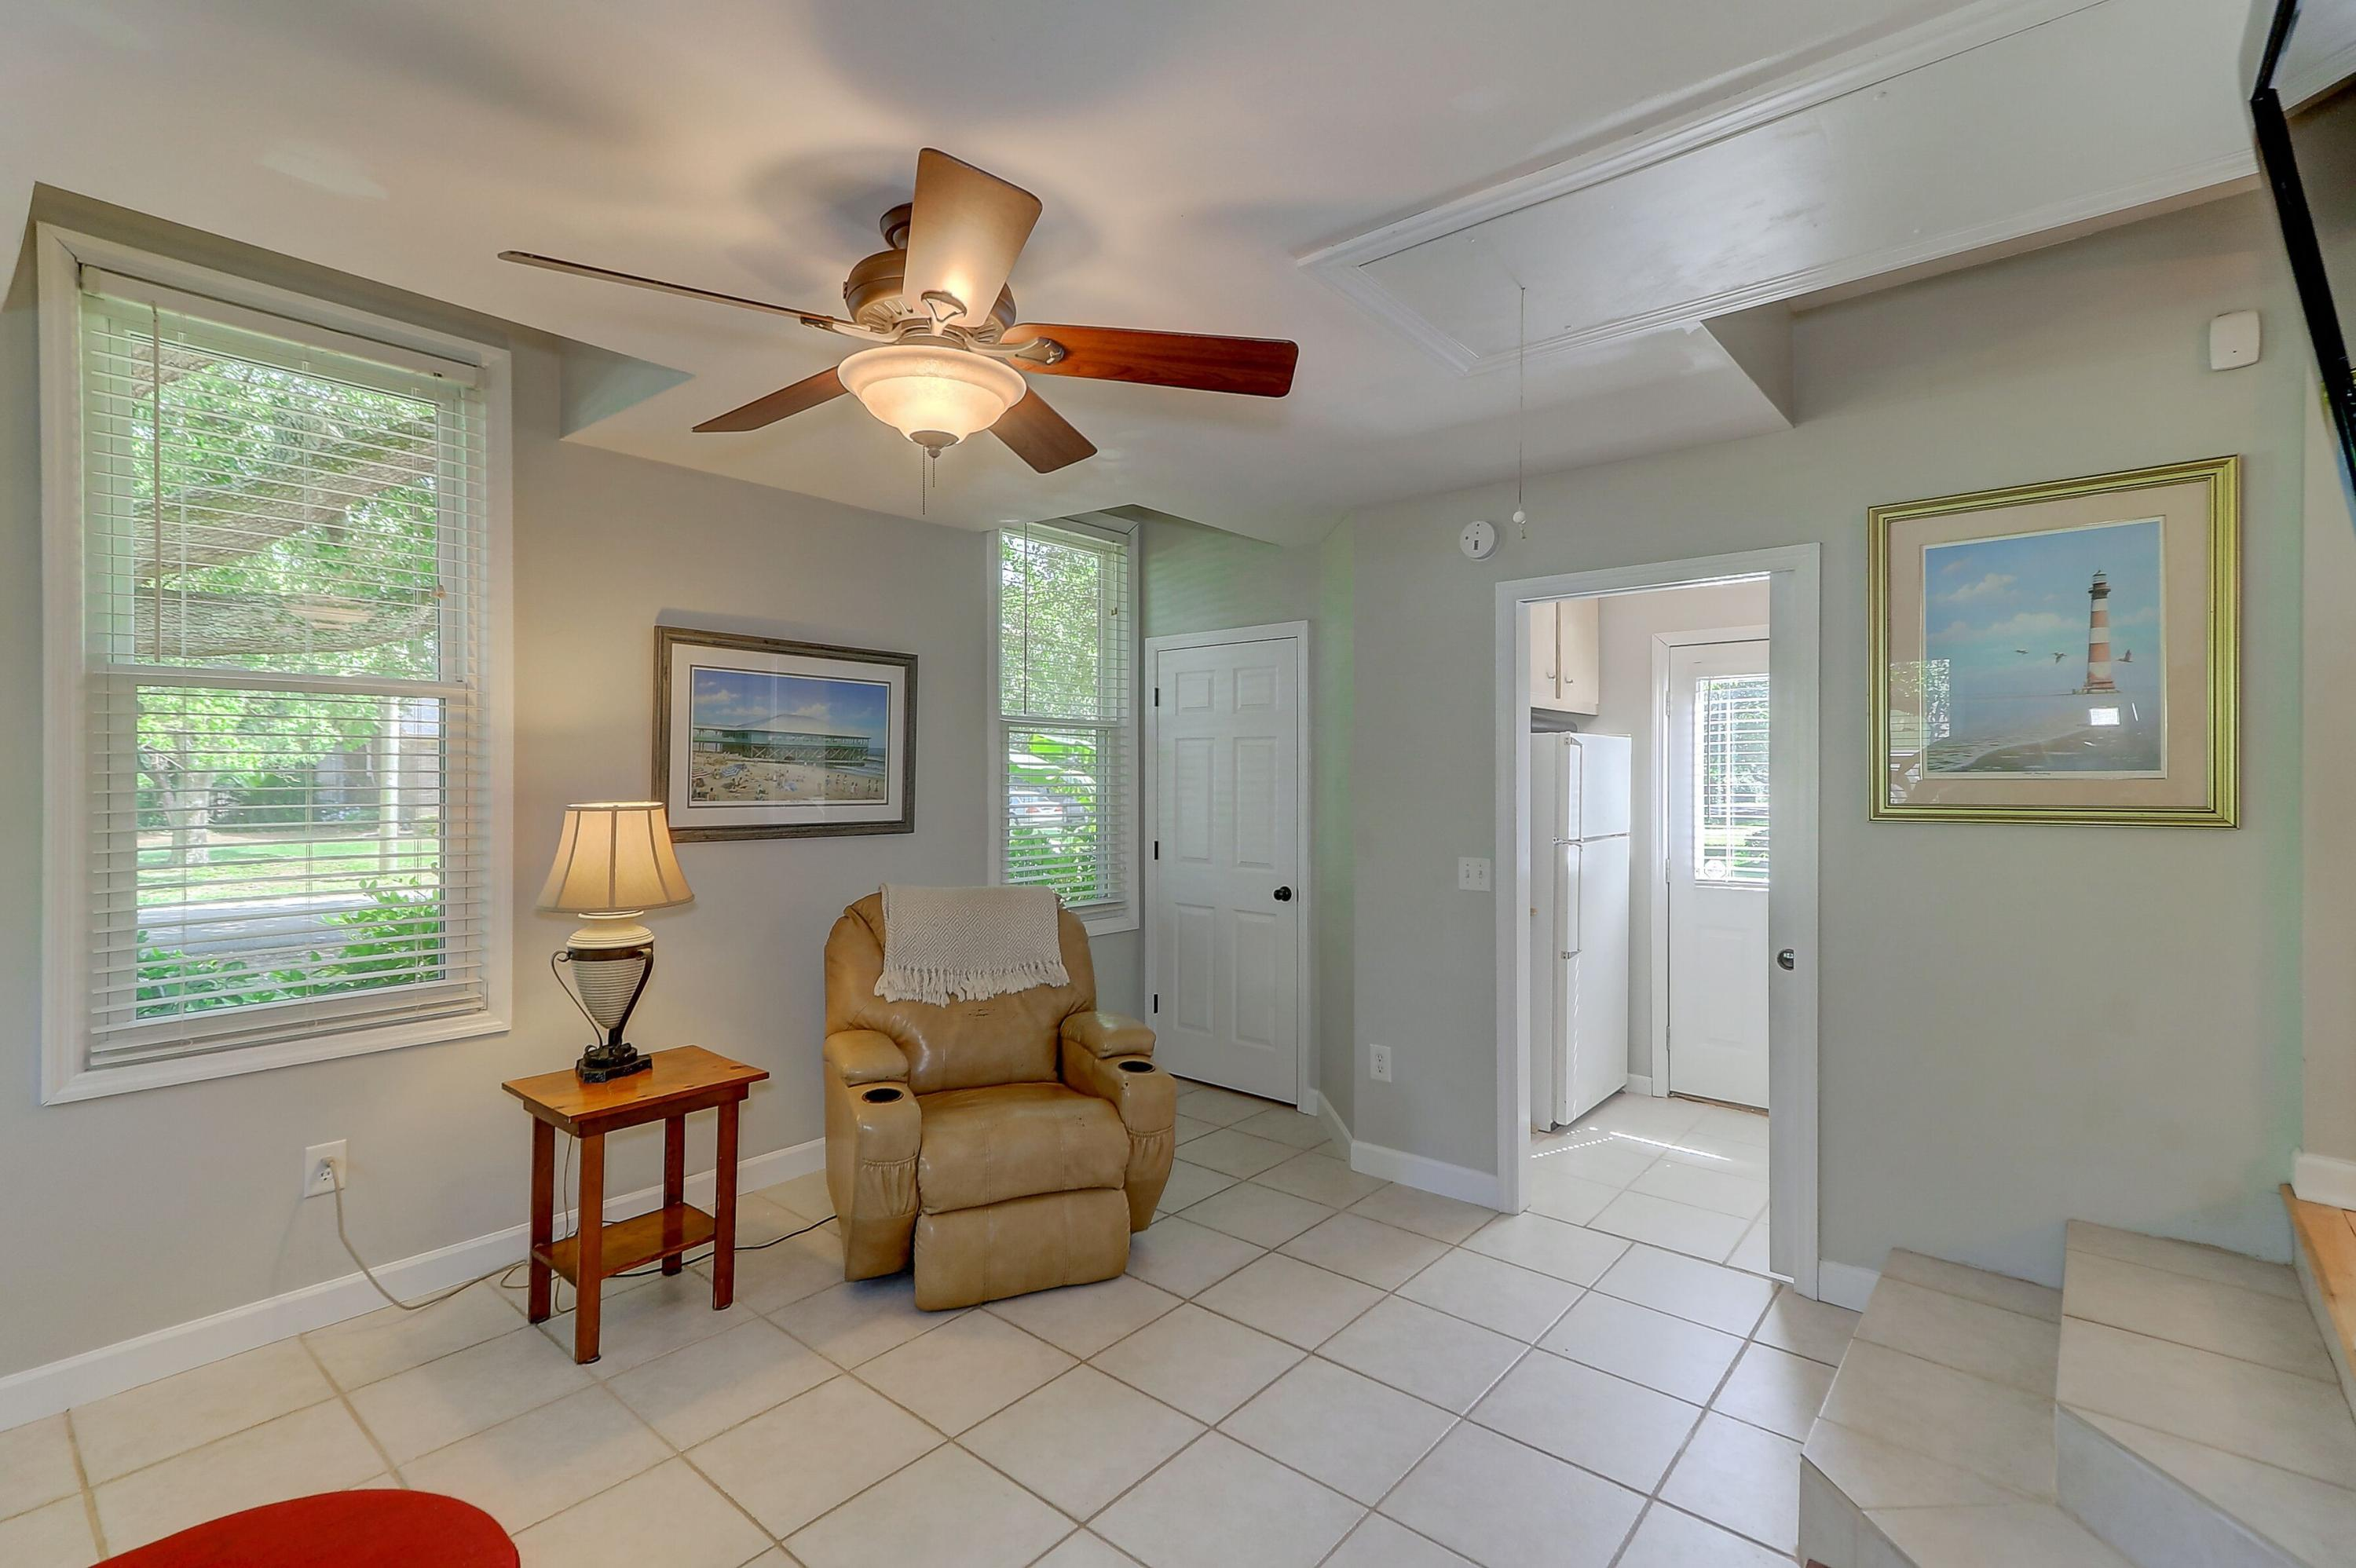 Lockwood Hall Homes For Sale - 869 Piccadilly, Charleston, SC - 21